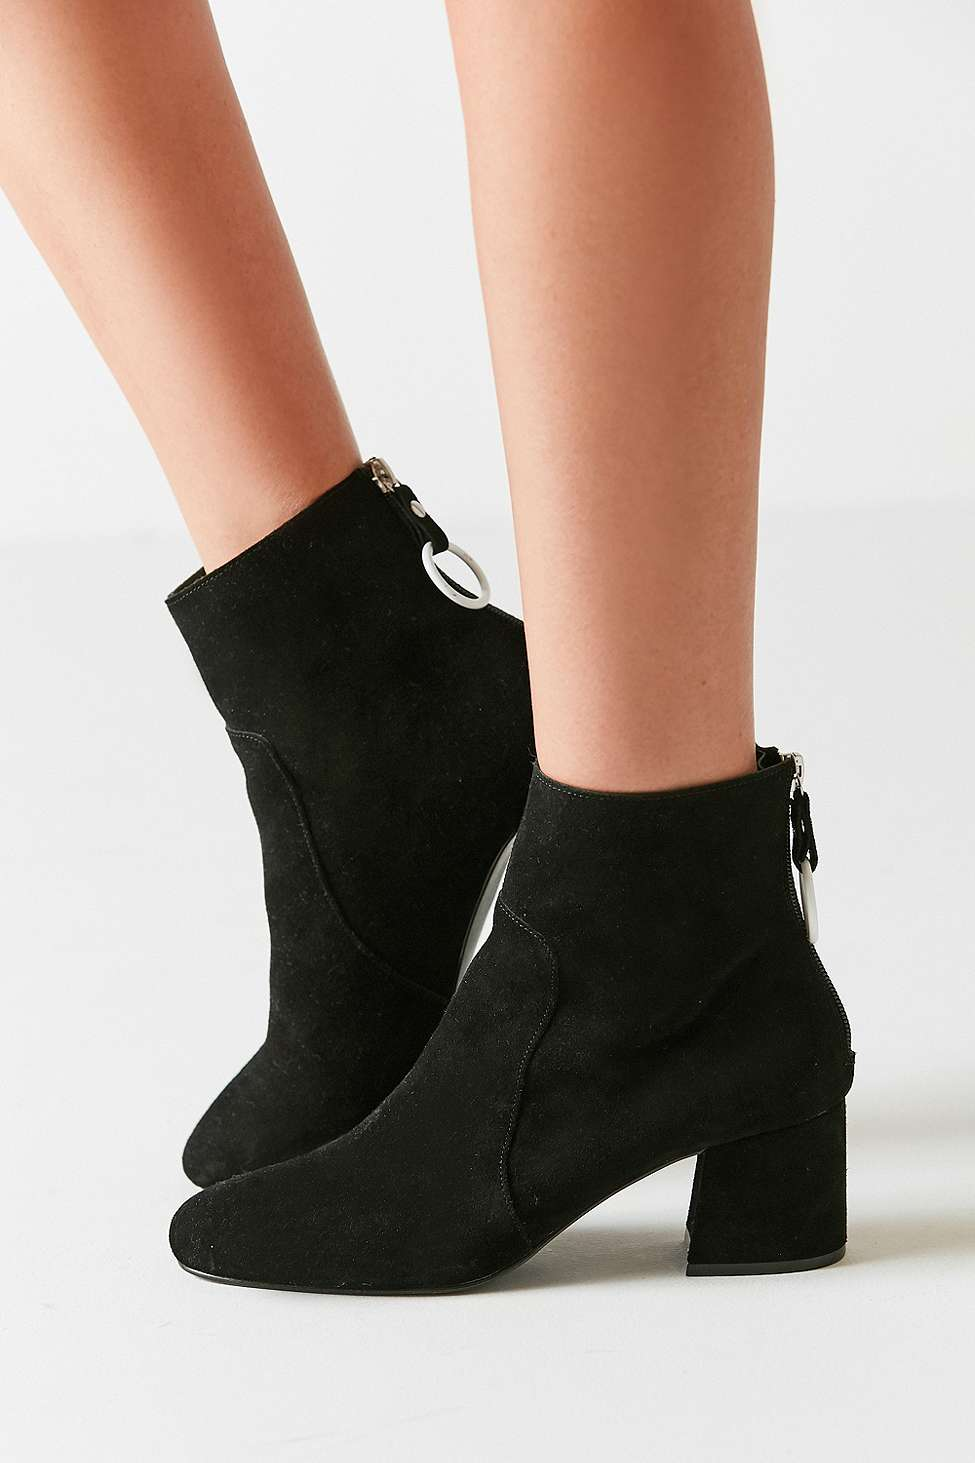 Harlow Suede O-Ring Black Ankle Boots, Black